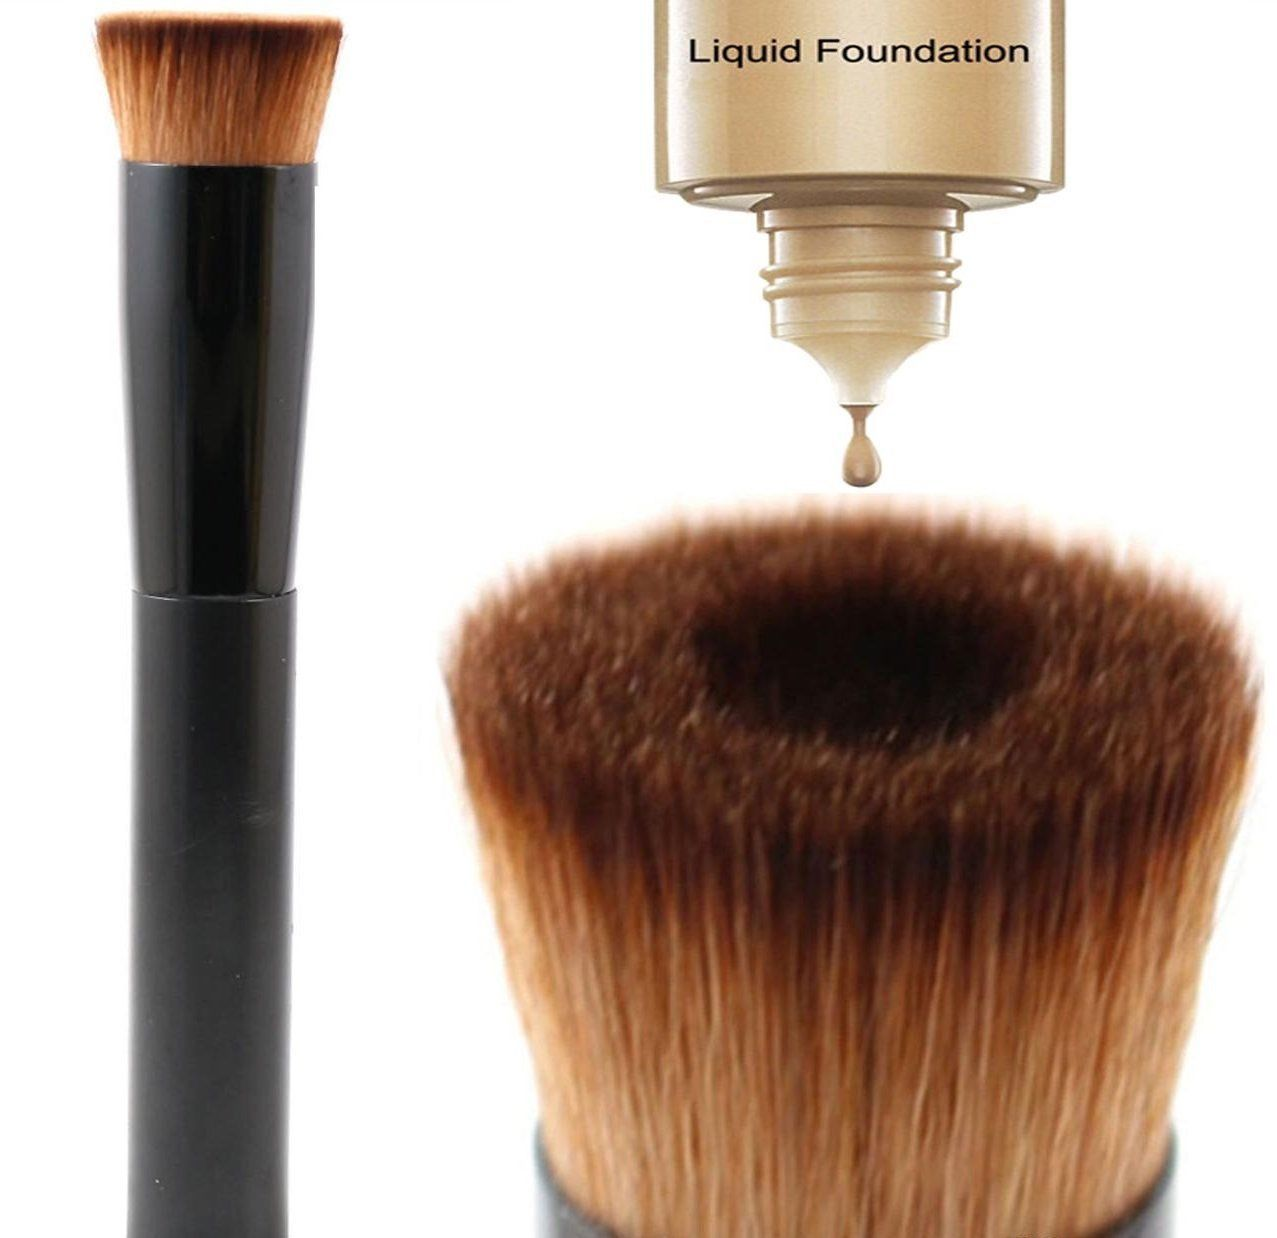 Glamza Liquid Foundation Brush, Cosmetic Tools by Forever Cosmetics